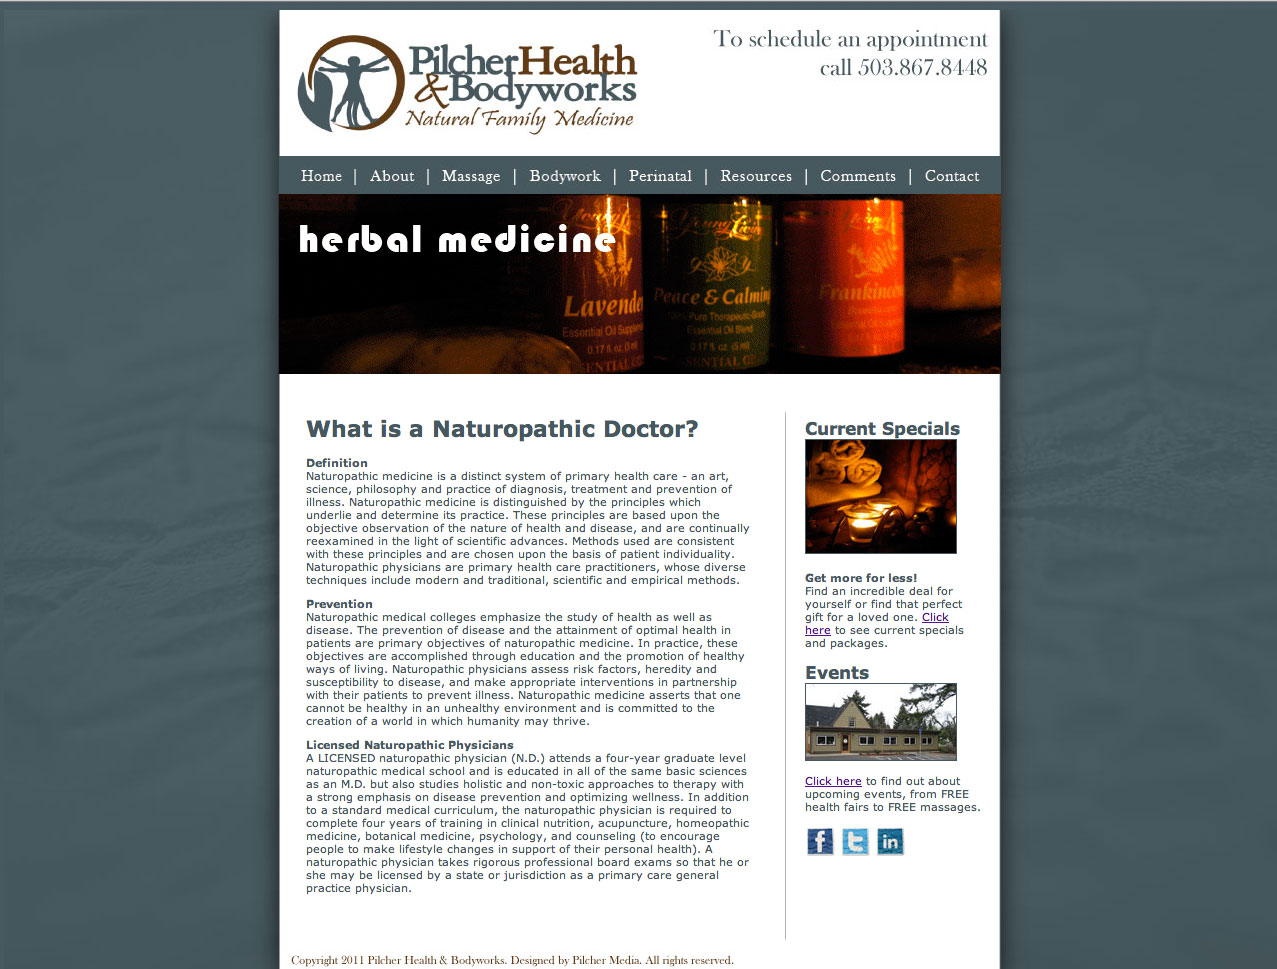 Pilcher Health and Bodyworks Website Design and Development